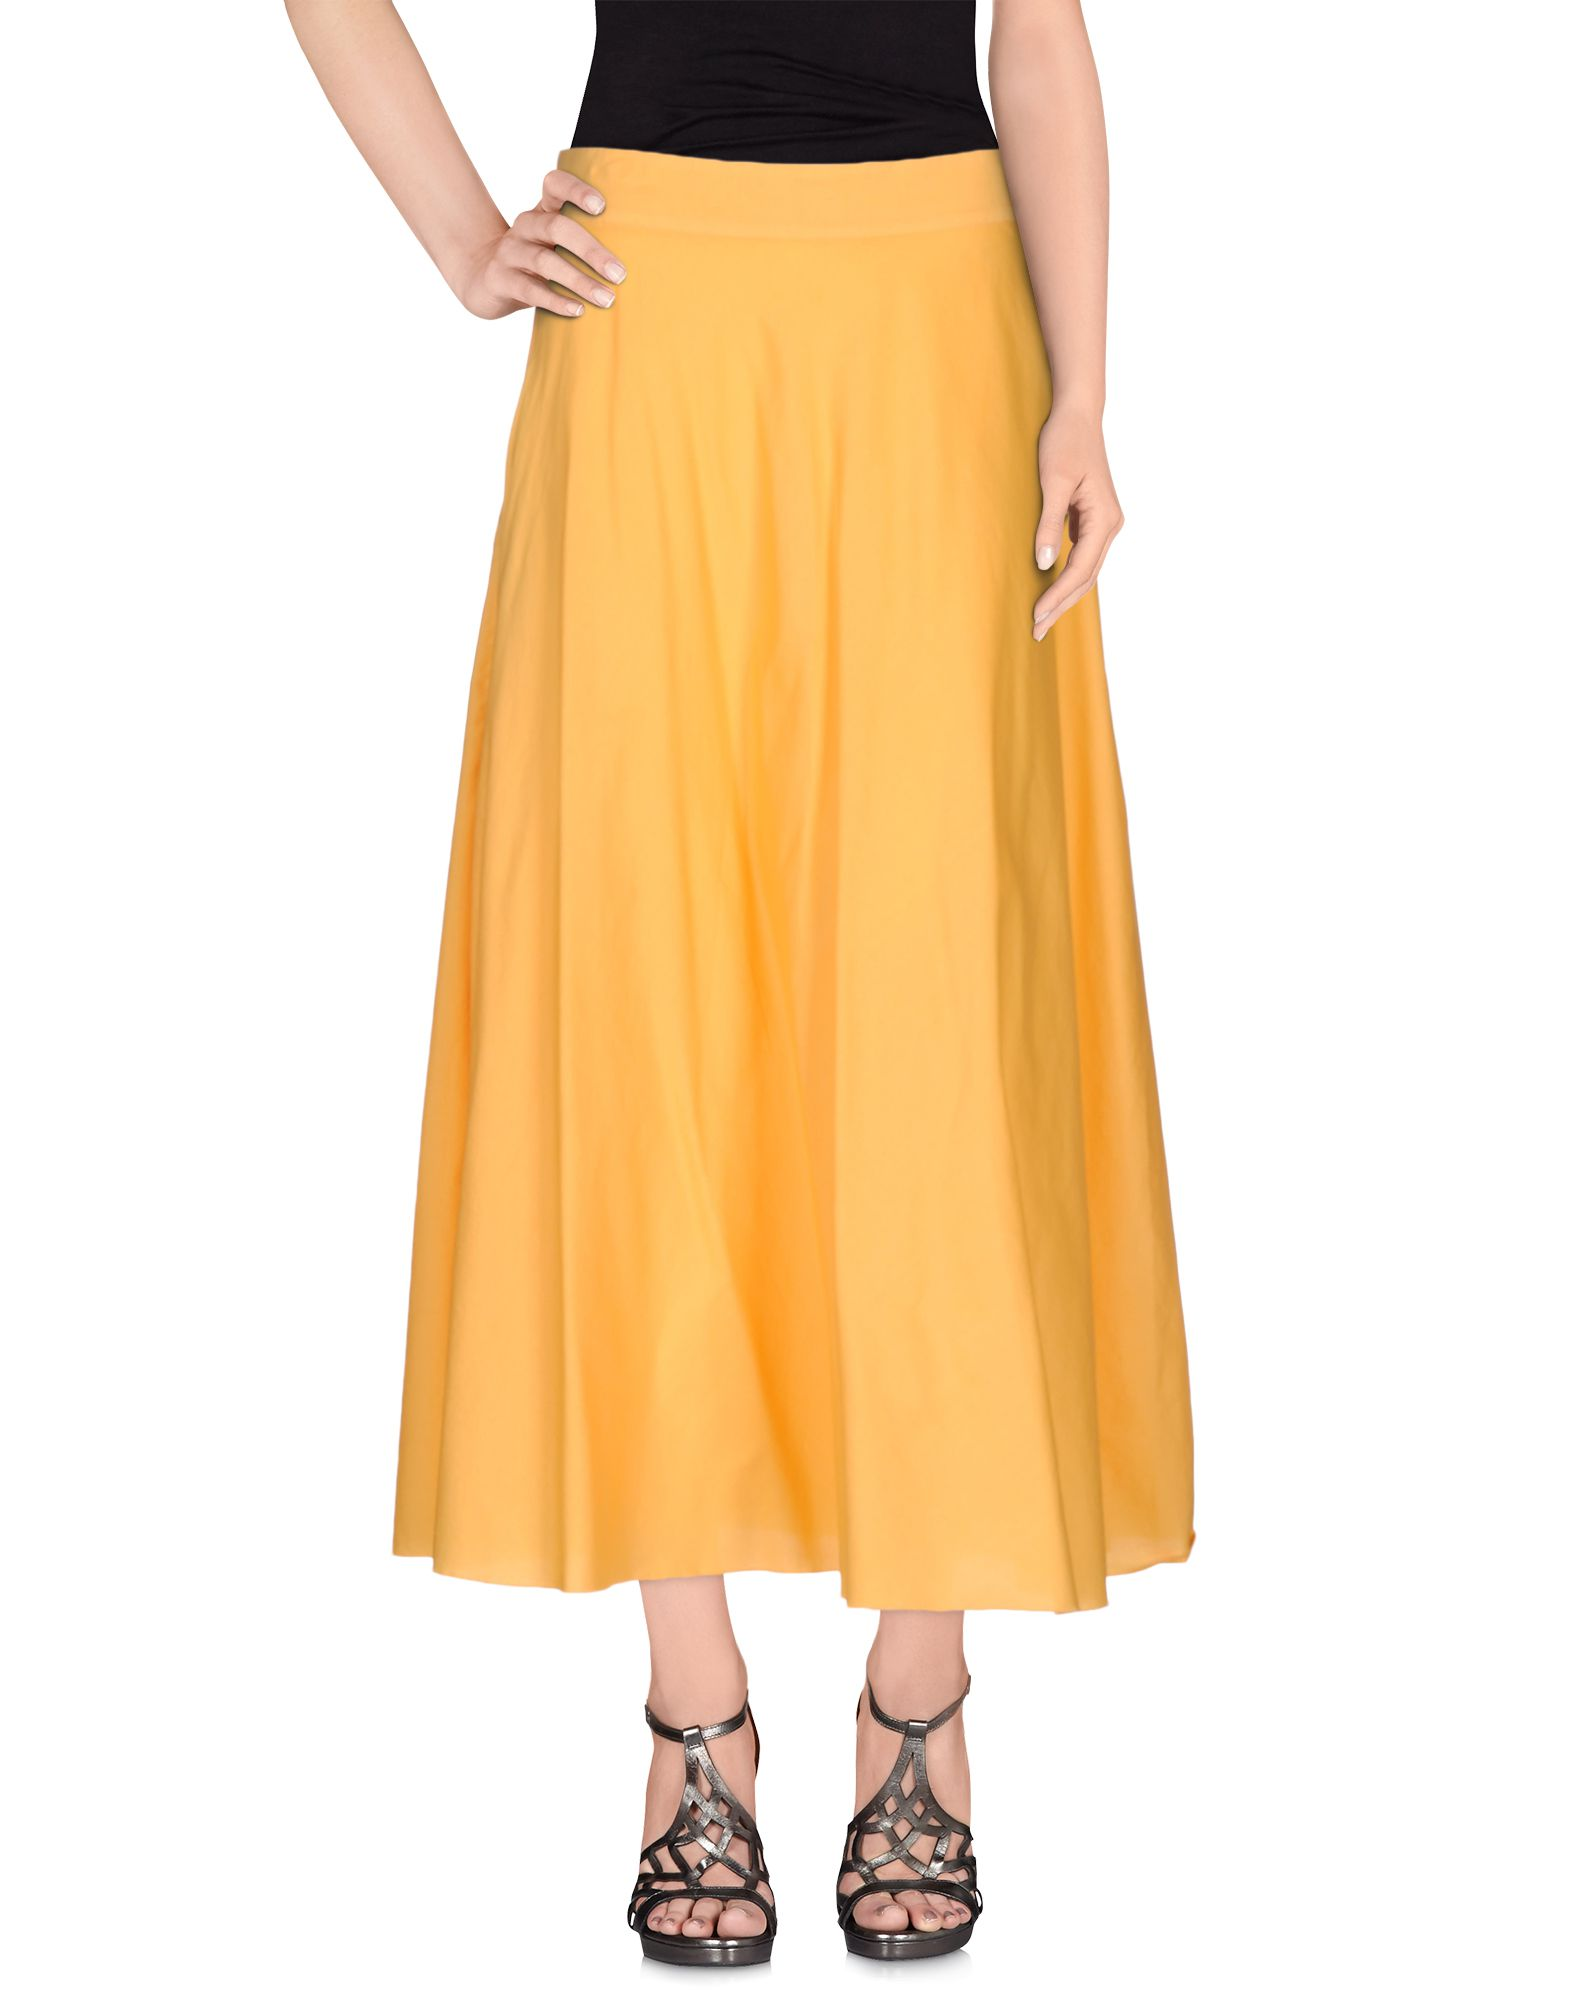 FEMME BY MICHELE ROSSI Long skirts